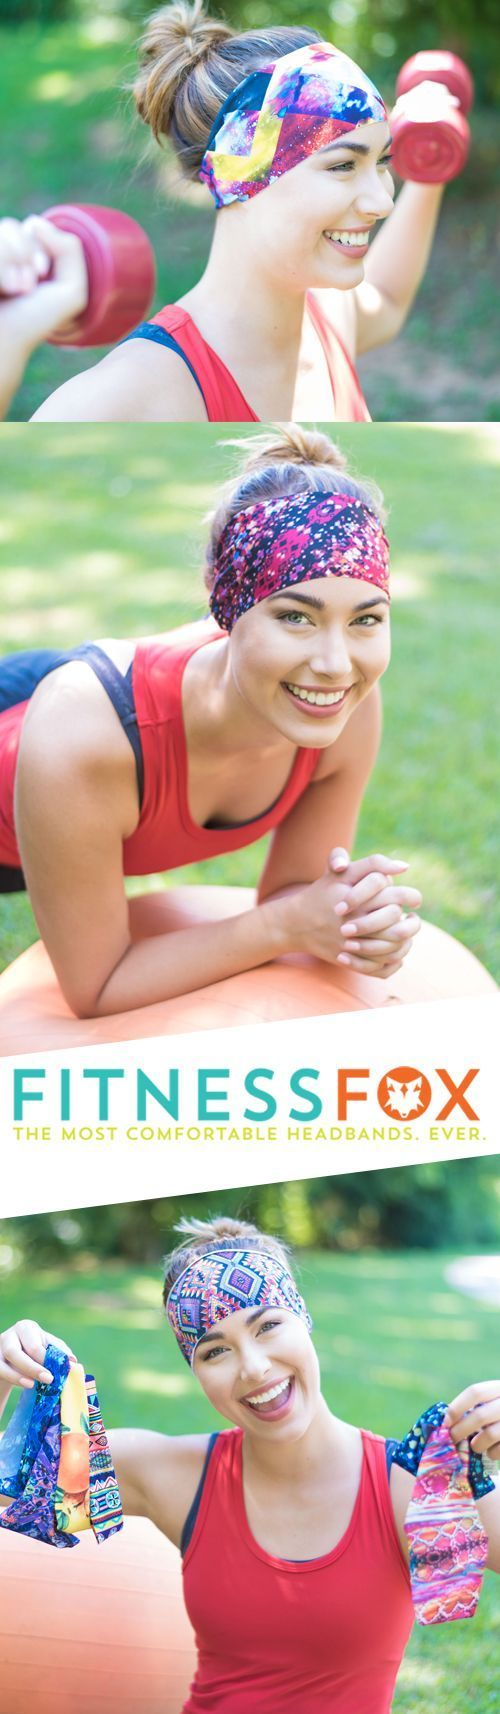 Trend Alert: Colorful, no-slip headbands are a must this fall. Add these bright and sweat absorbing headbands to your workout wardrobe to freshen up your gym look. Fitness Fox Headbands offers hundreds of prints and colors to choose from.